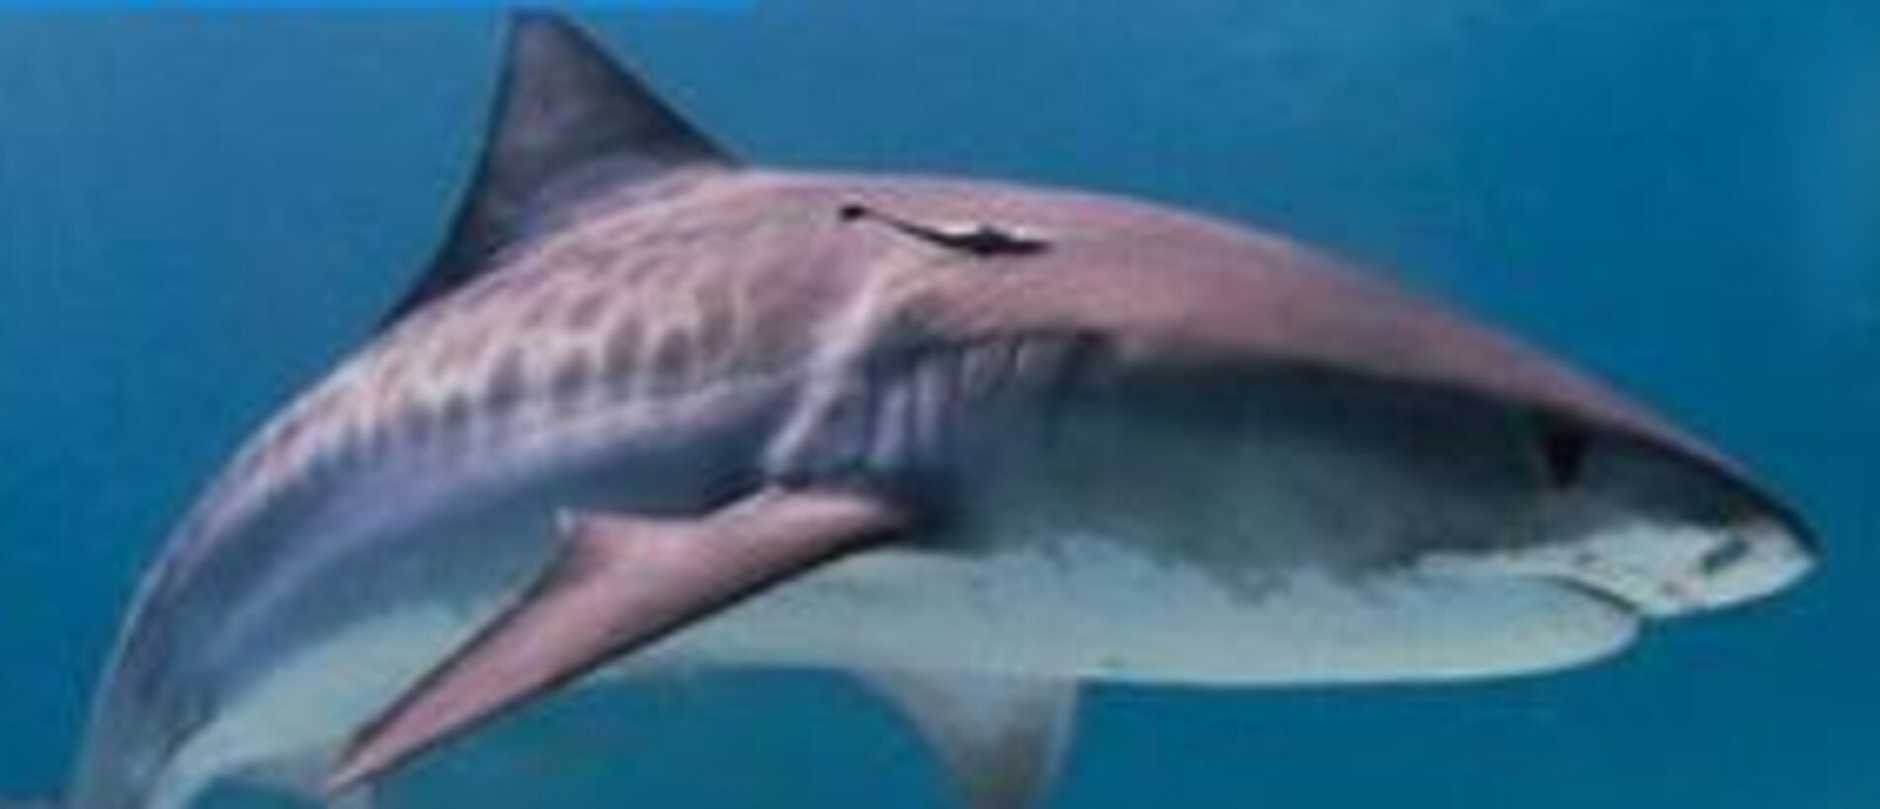 Queensland fishermen are reporting an increase in shark numbers swimming in local waters.